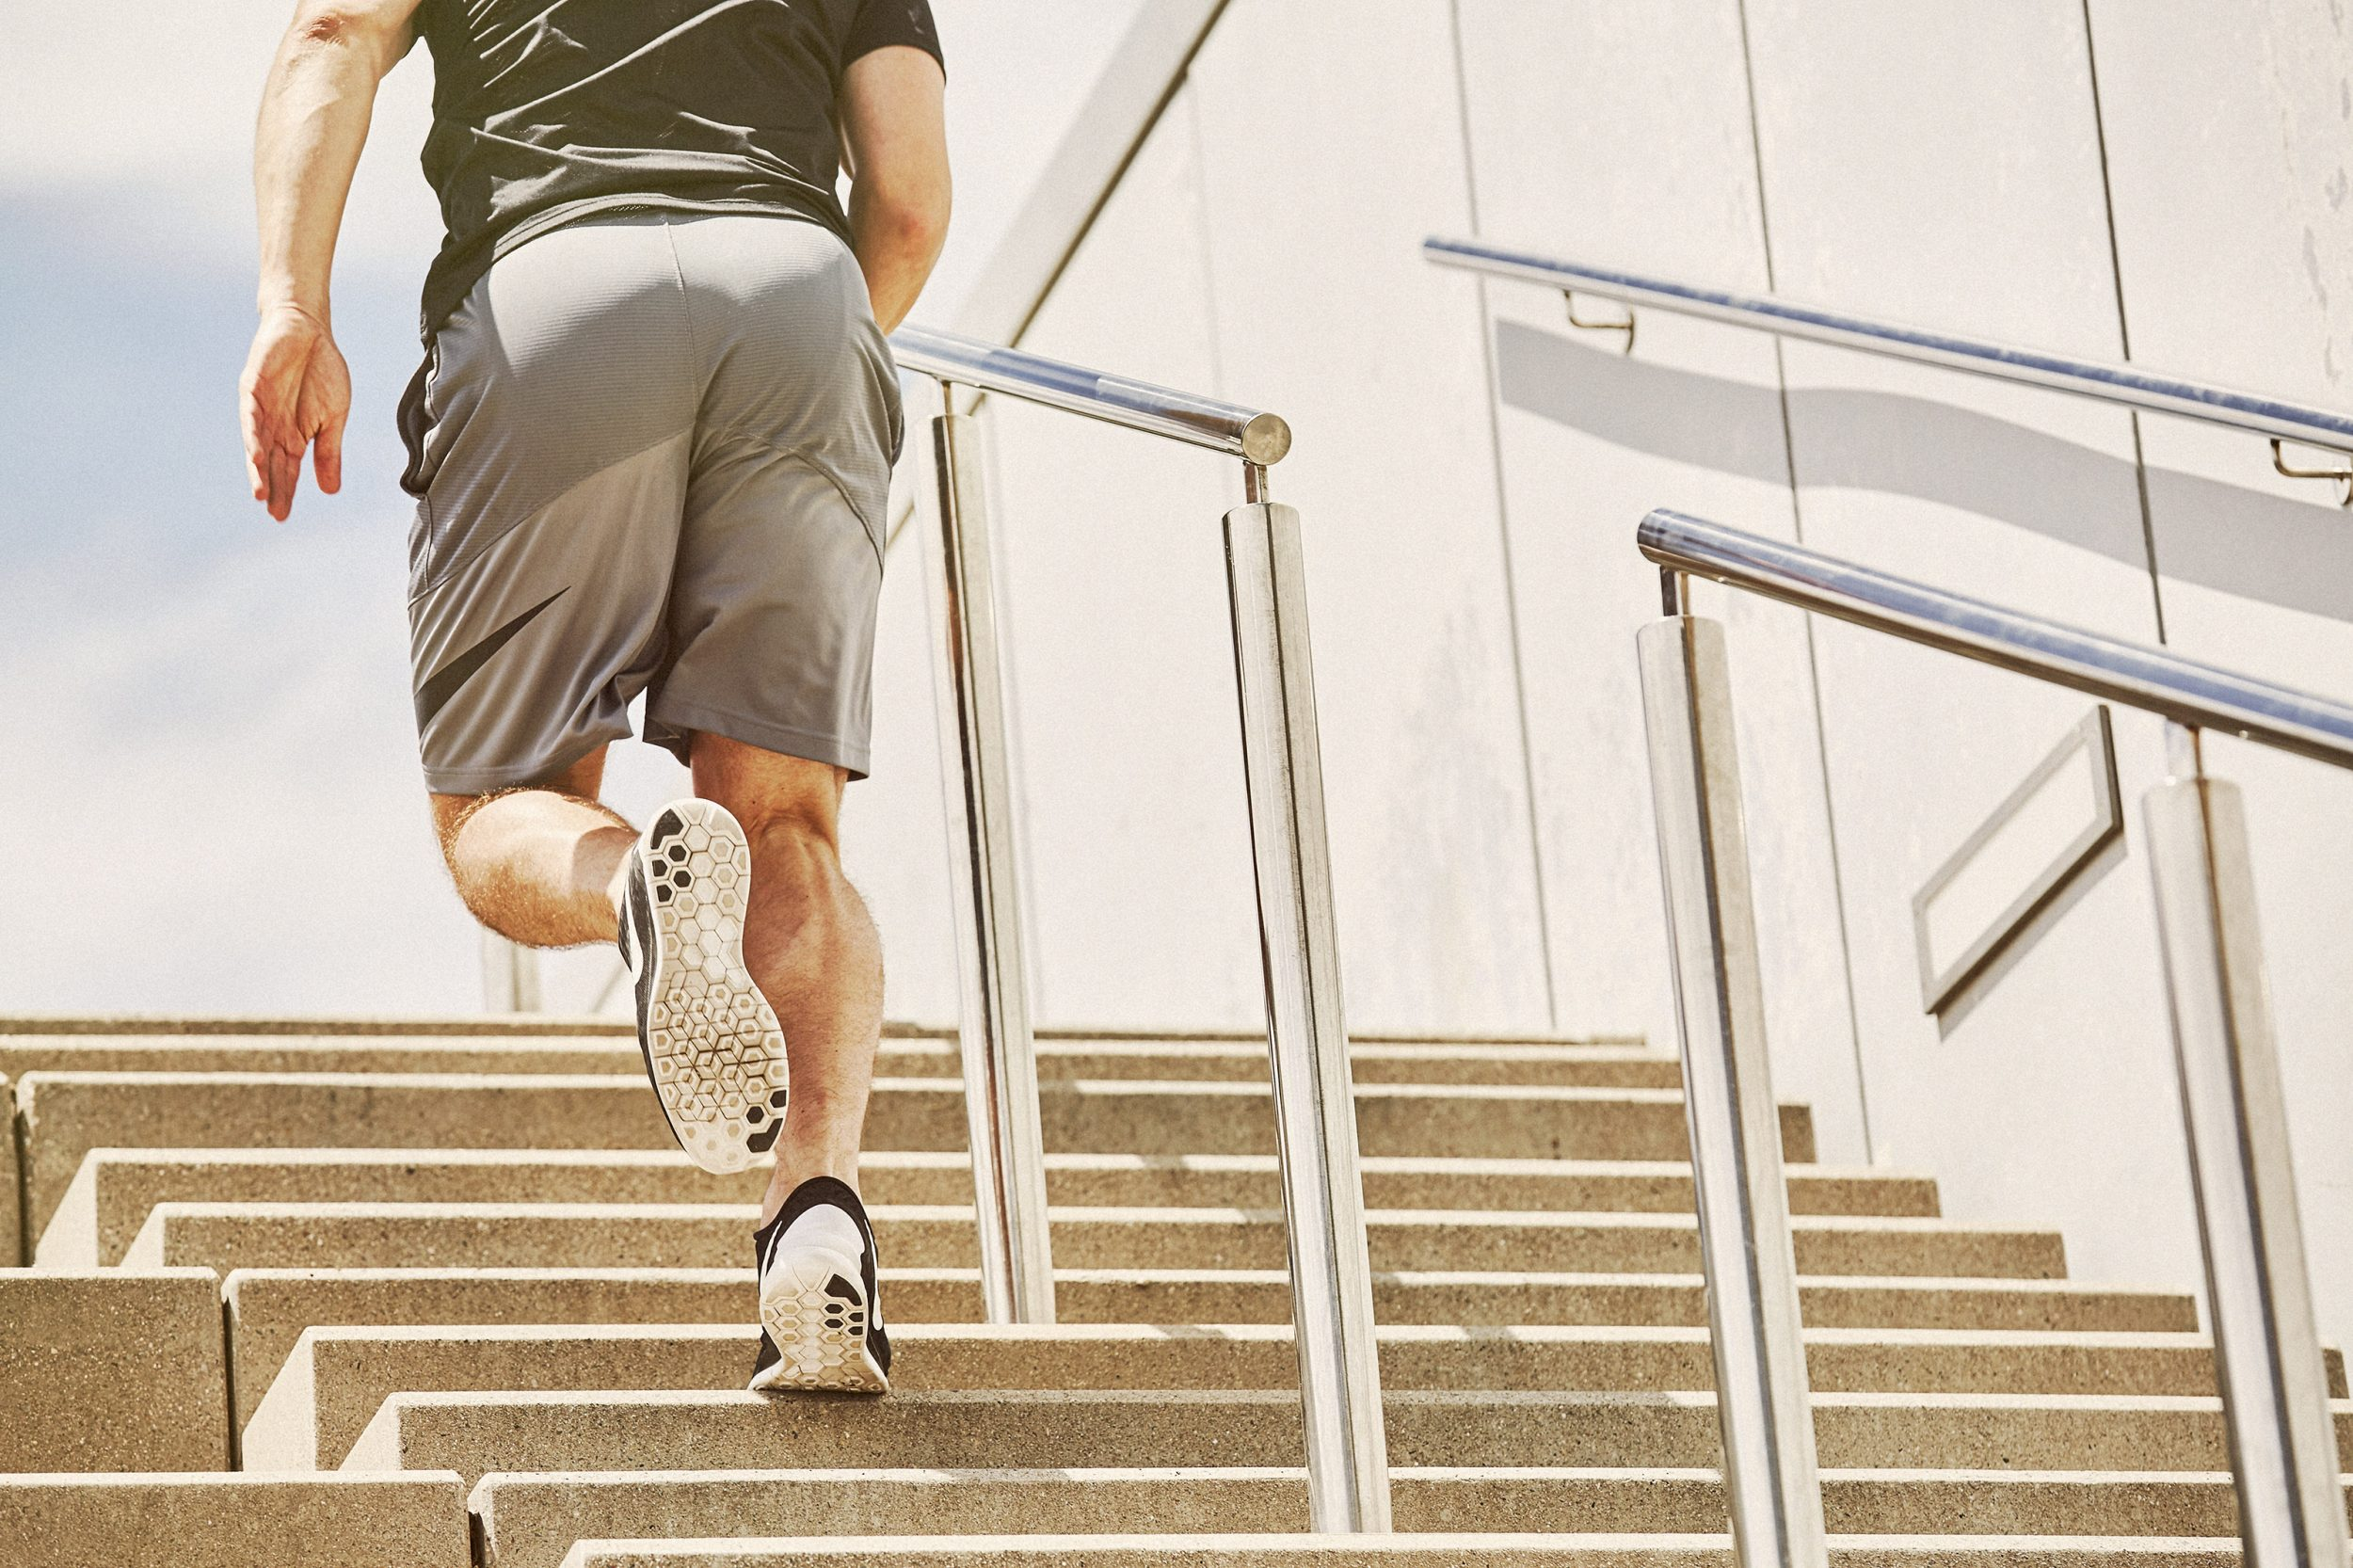 athlete doing stair training